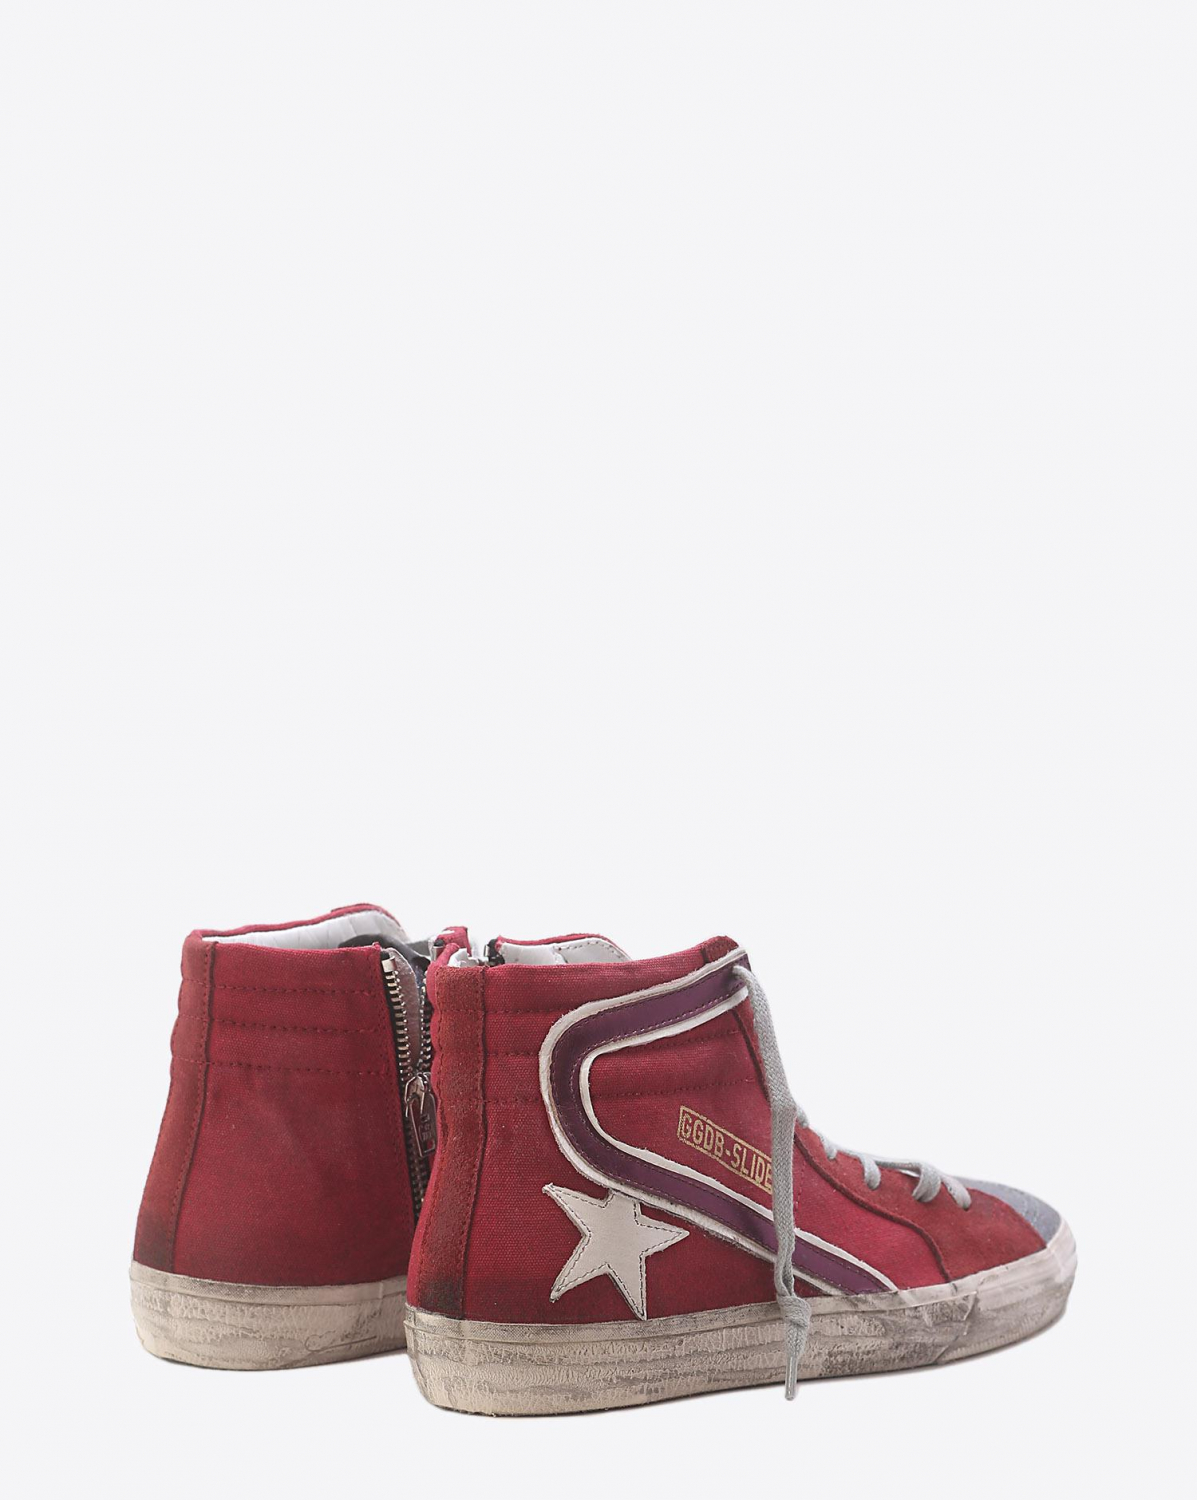 Golden Goose Woman Pré-Collection Sneakers Slide Red Canvas - Multicolor Glitter